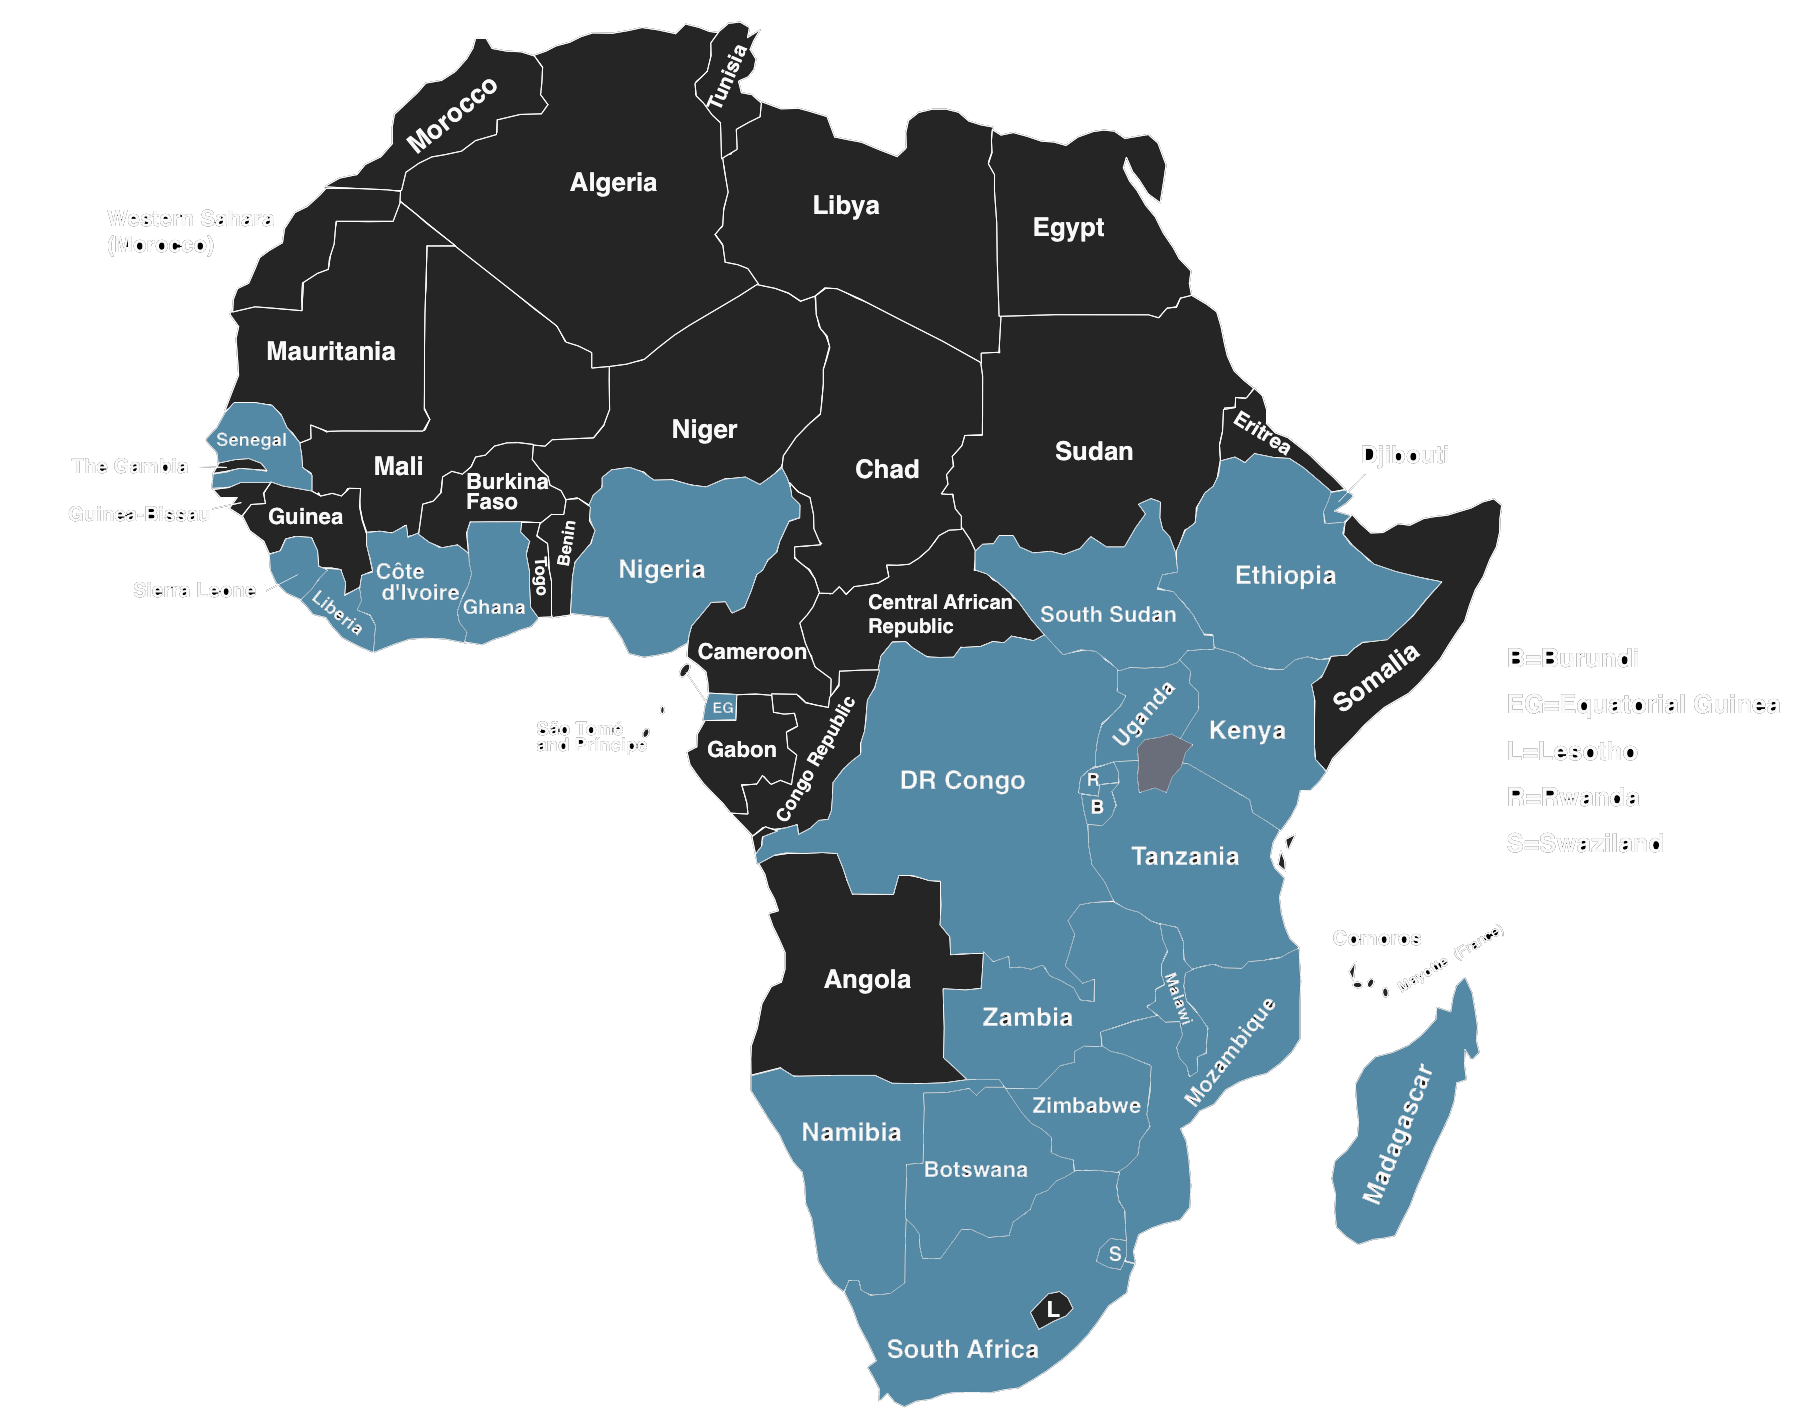 //143lifefoundation.org/wp-content/uploads/2017/09/Africa-Customizable-Map-2.png